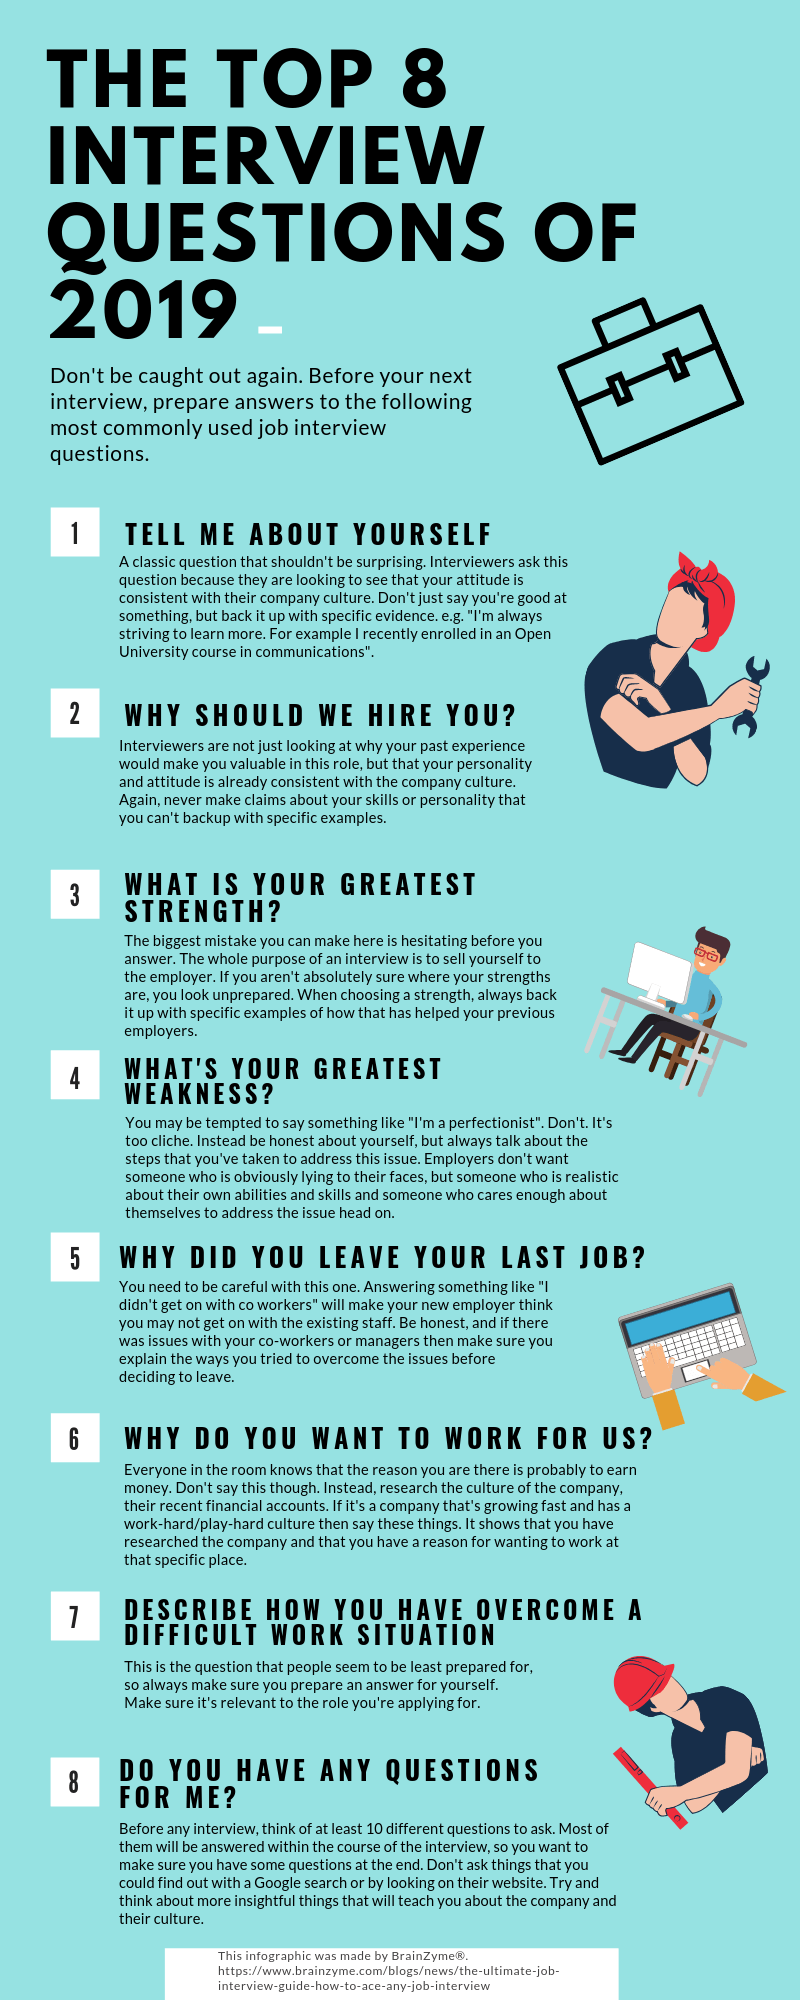 Job Interview Tips A Step By Step Guide for Acing Job Interviews in 2020